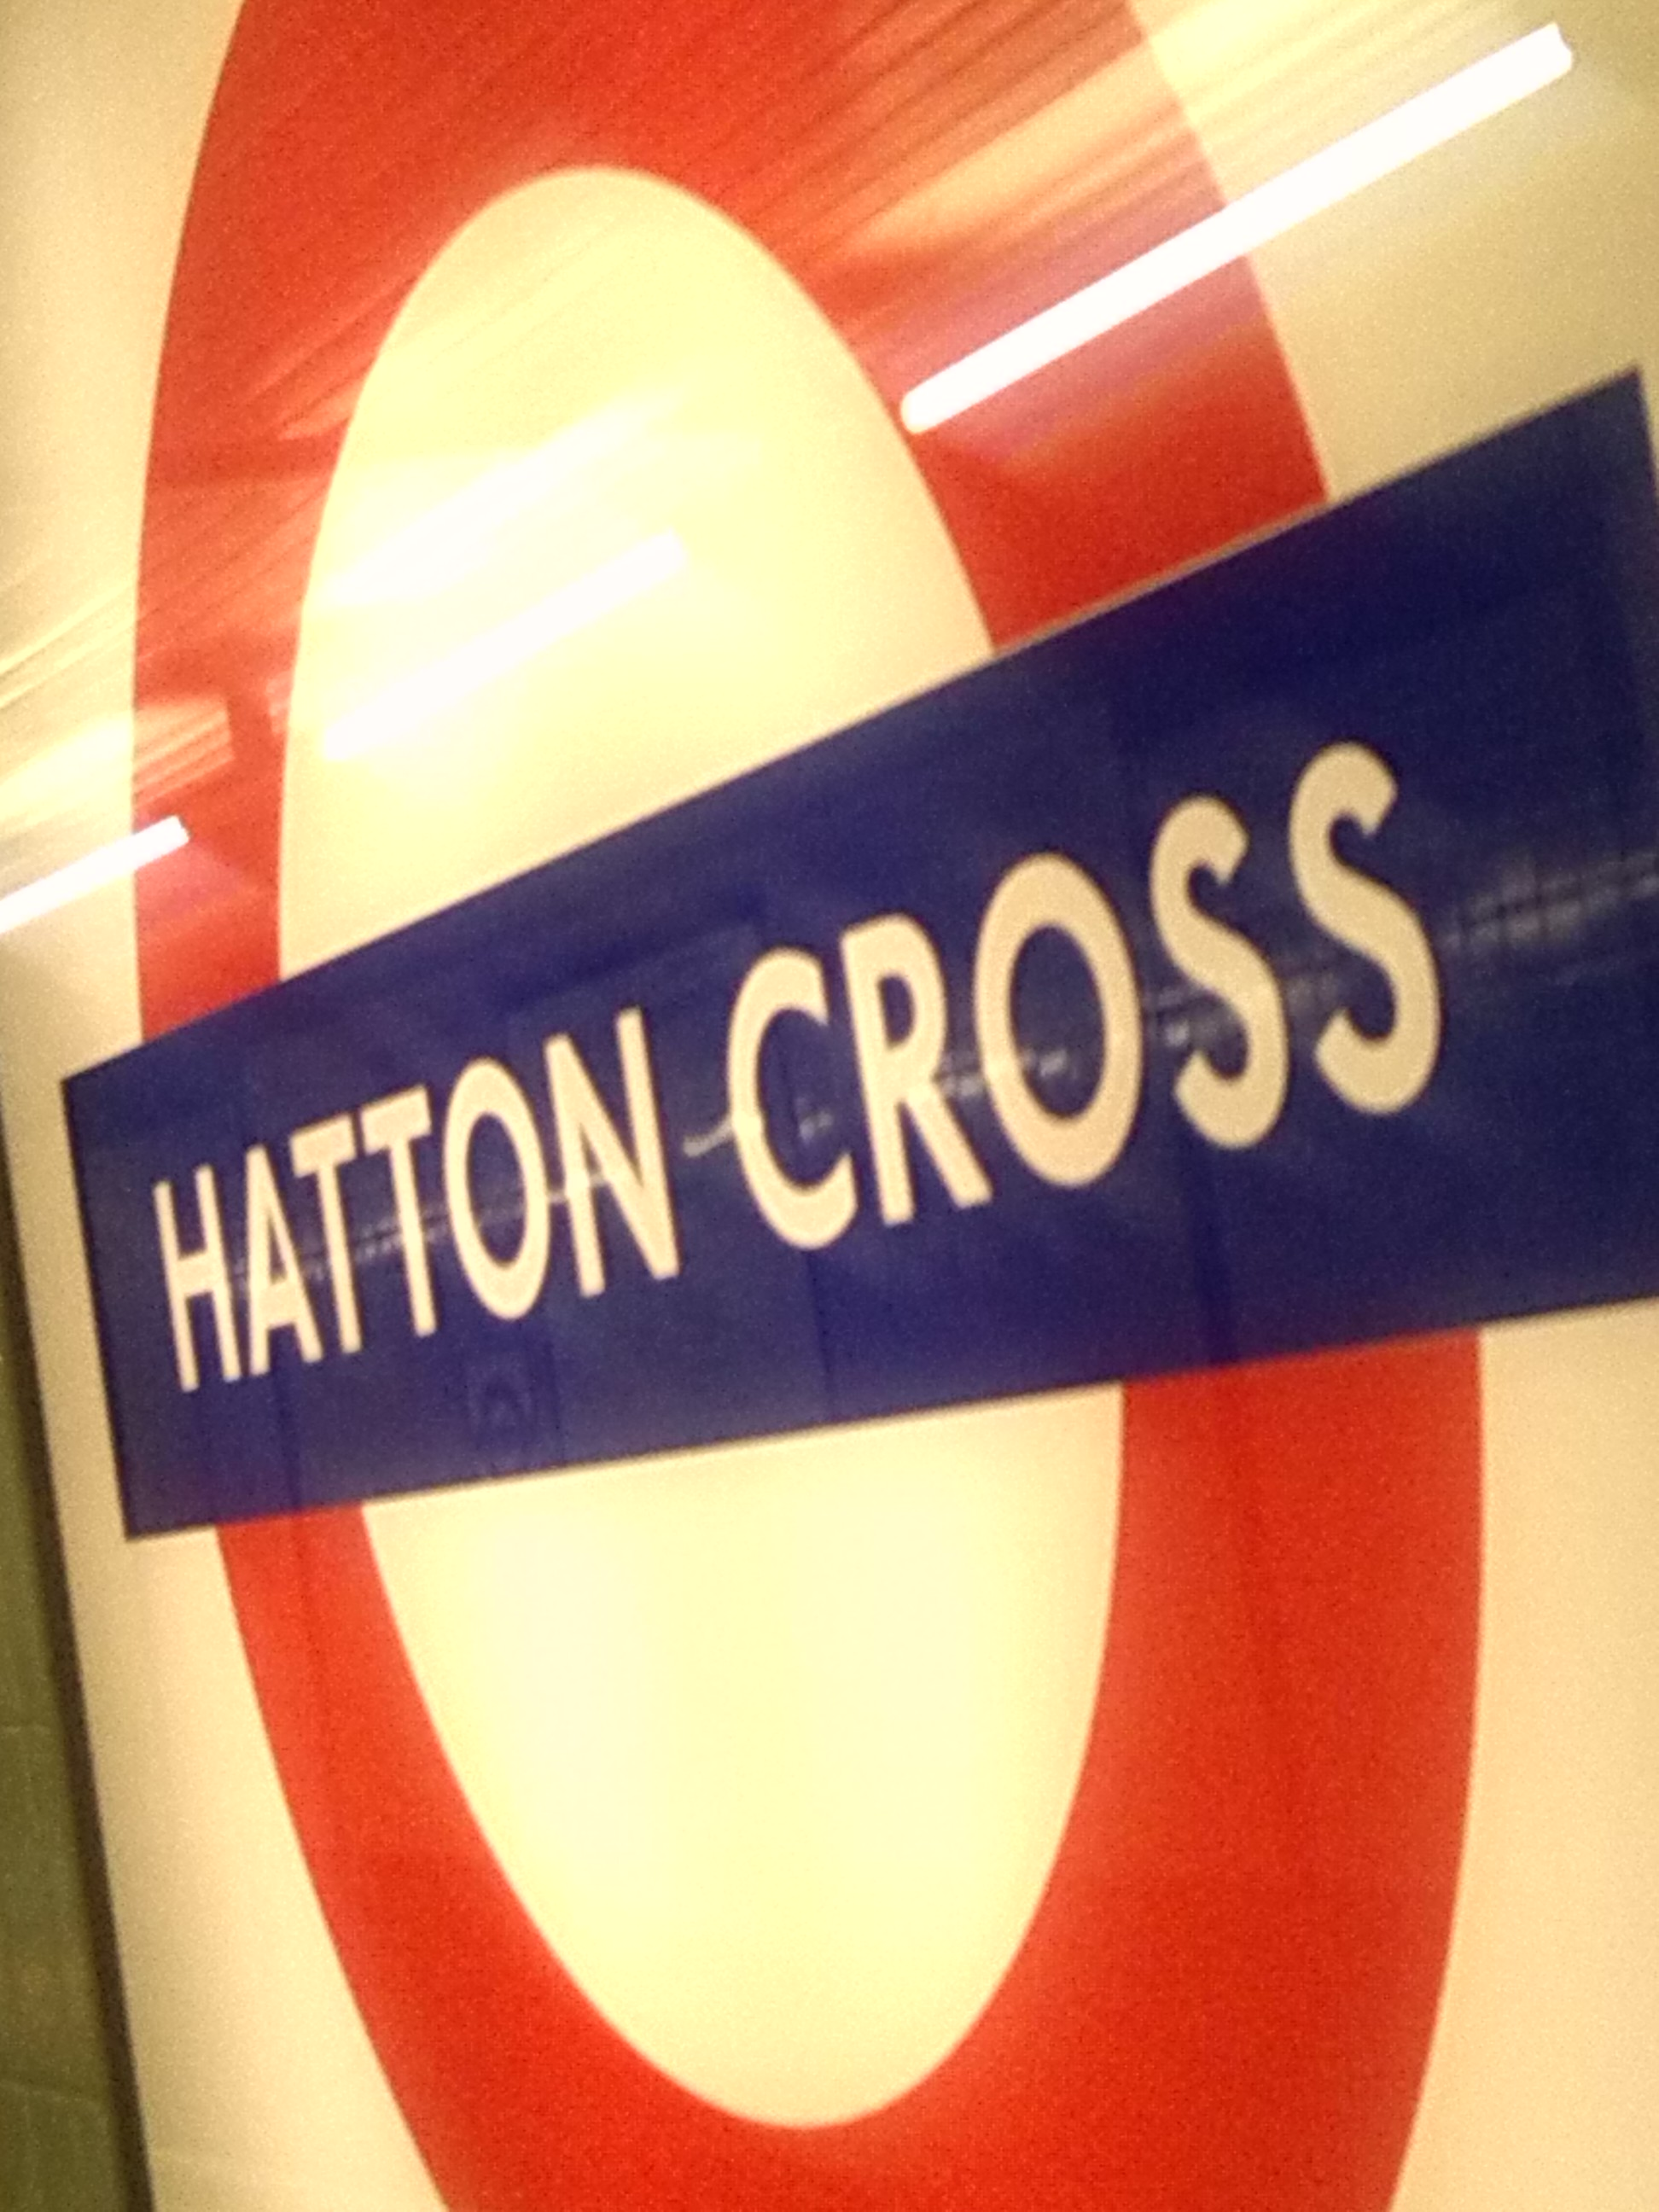 Hatton Cross